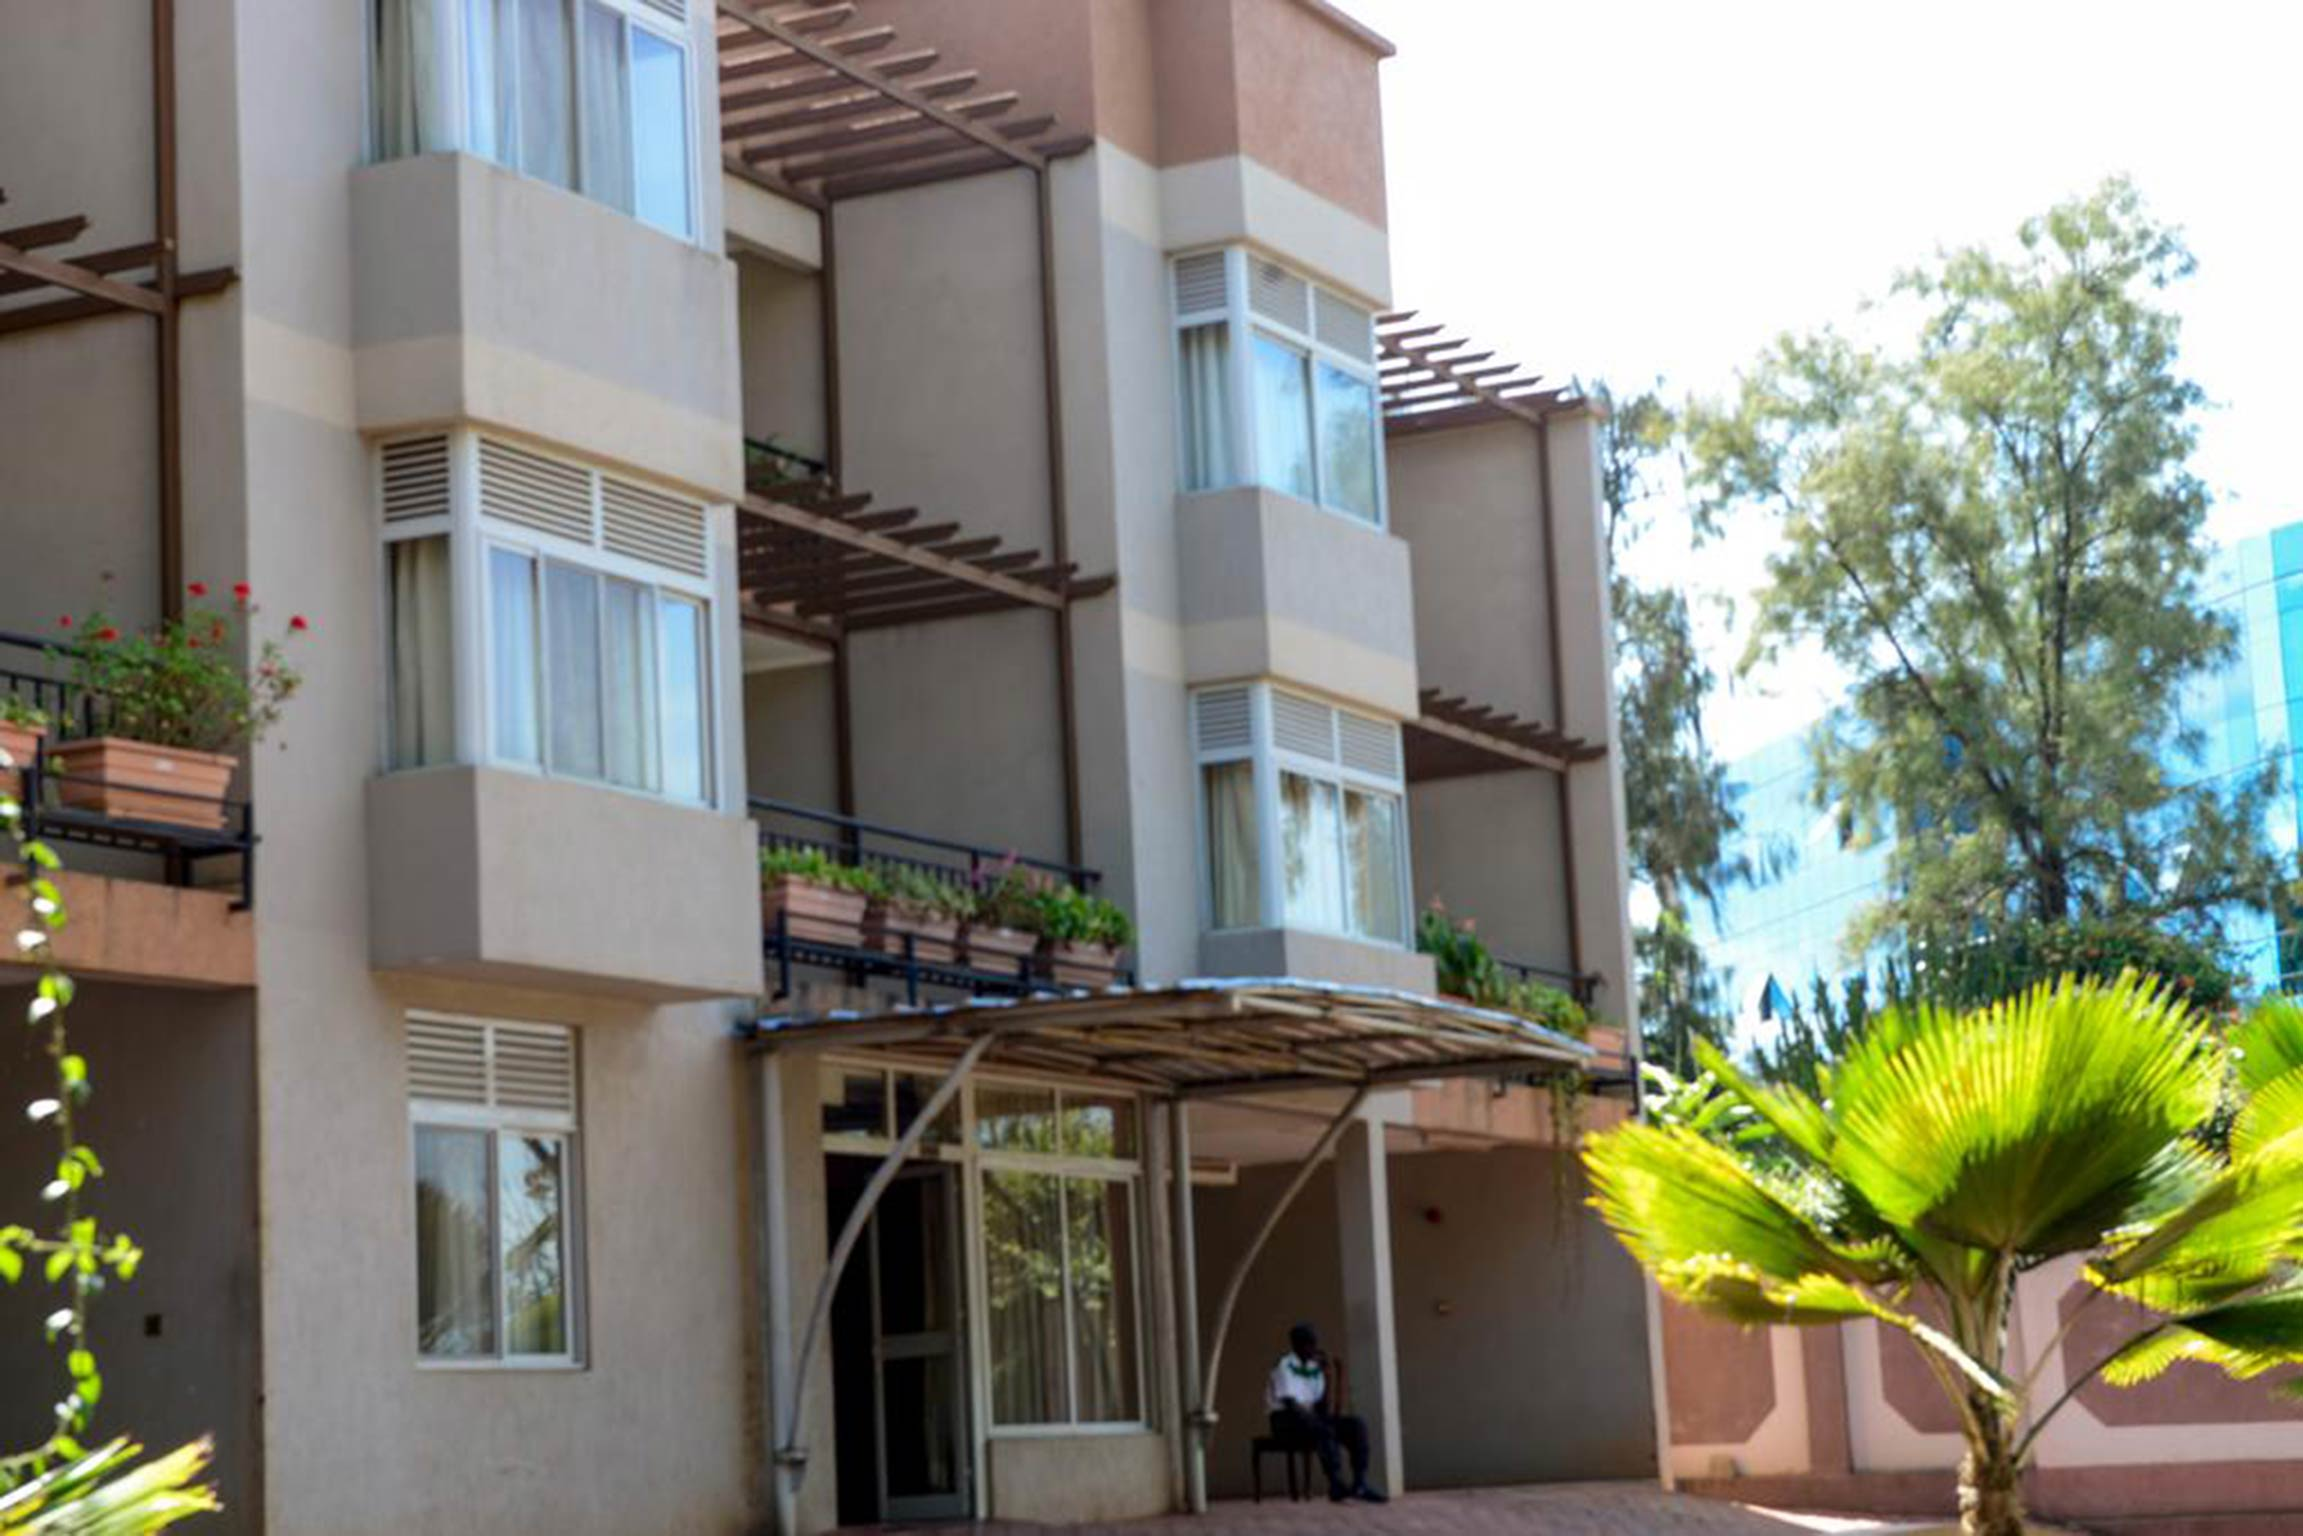 This Double room is a great choice for your fabulous stay Kigali